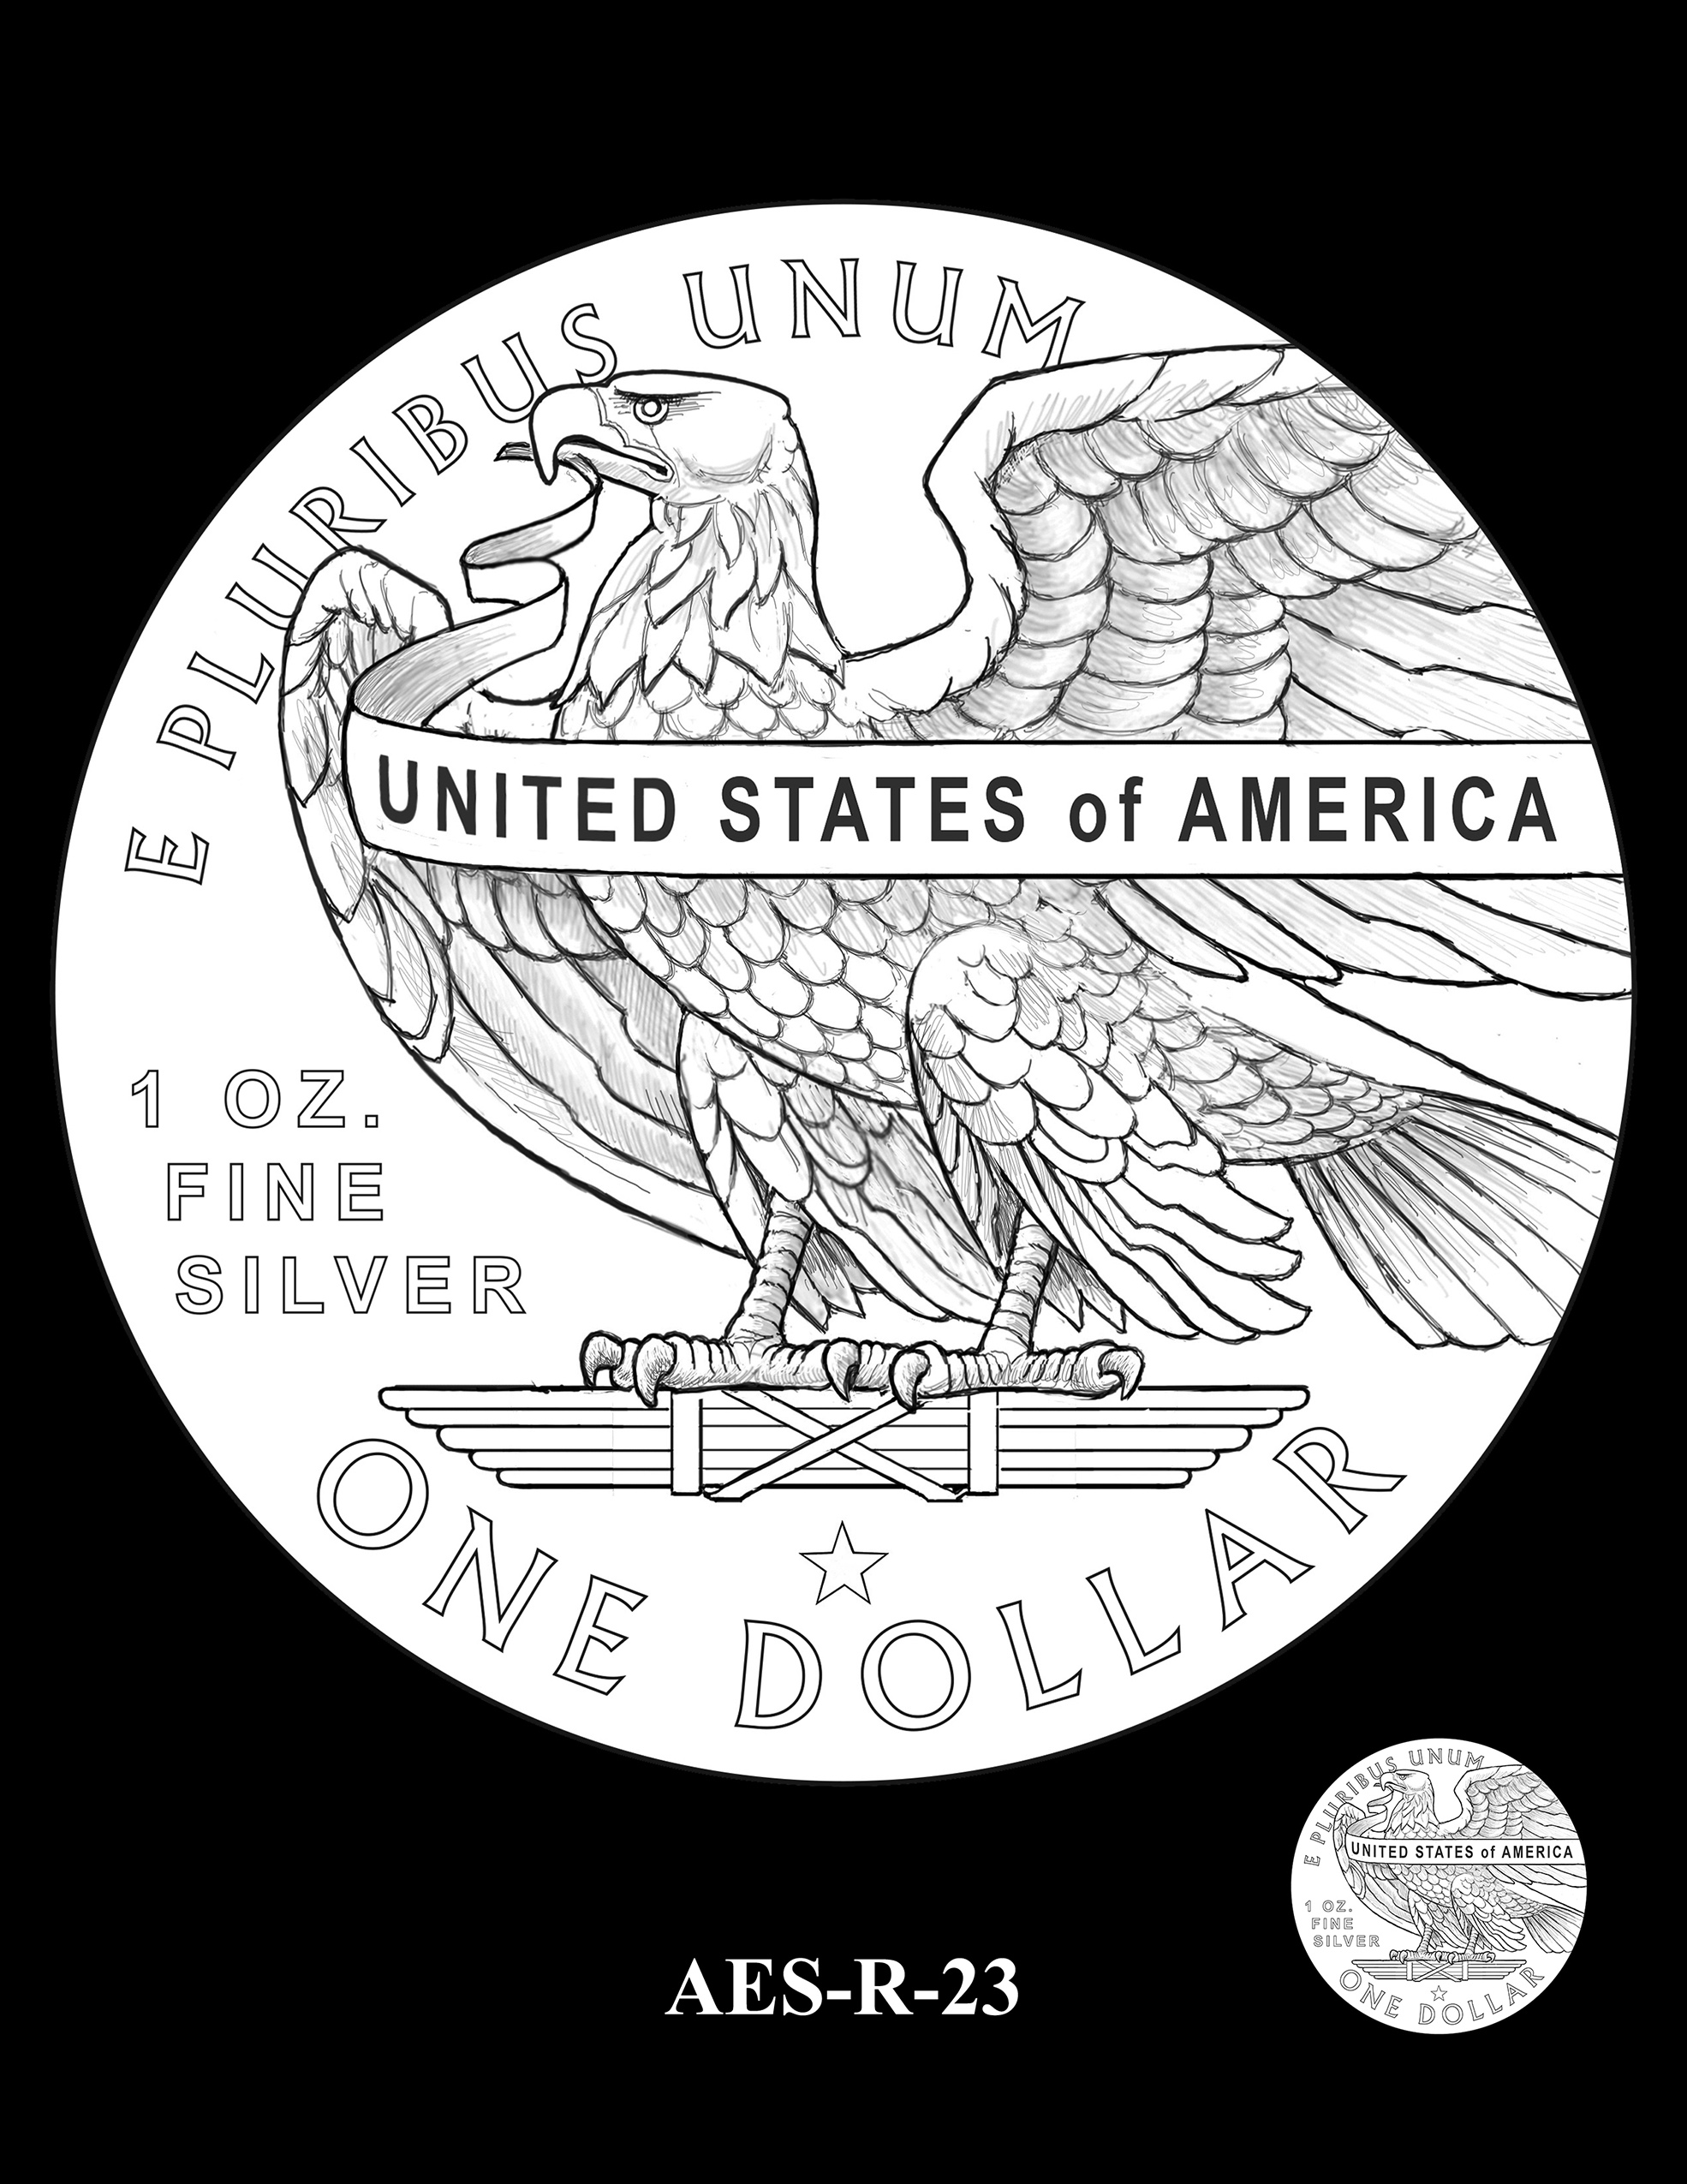 AES-R-23 -- American Eagle Proof and Bullion Silver Coin - Reverse